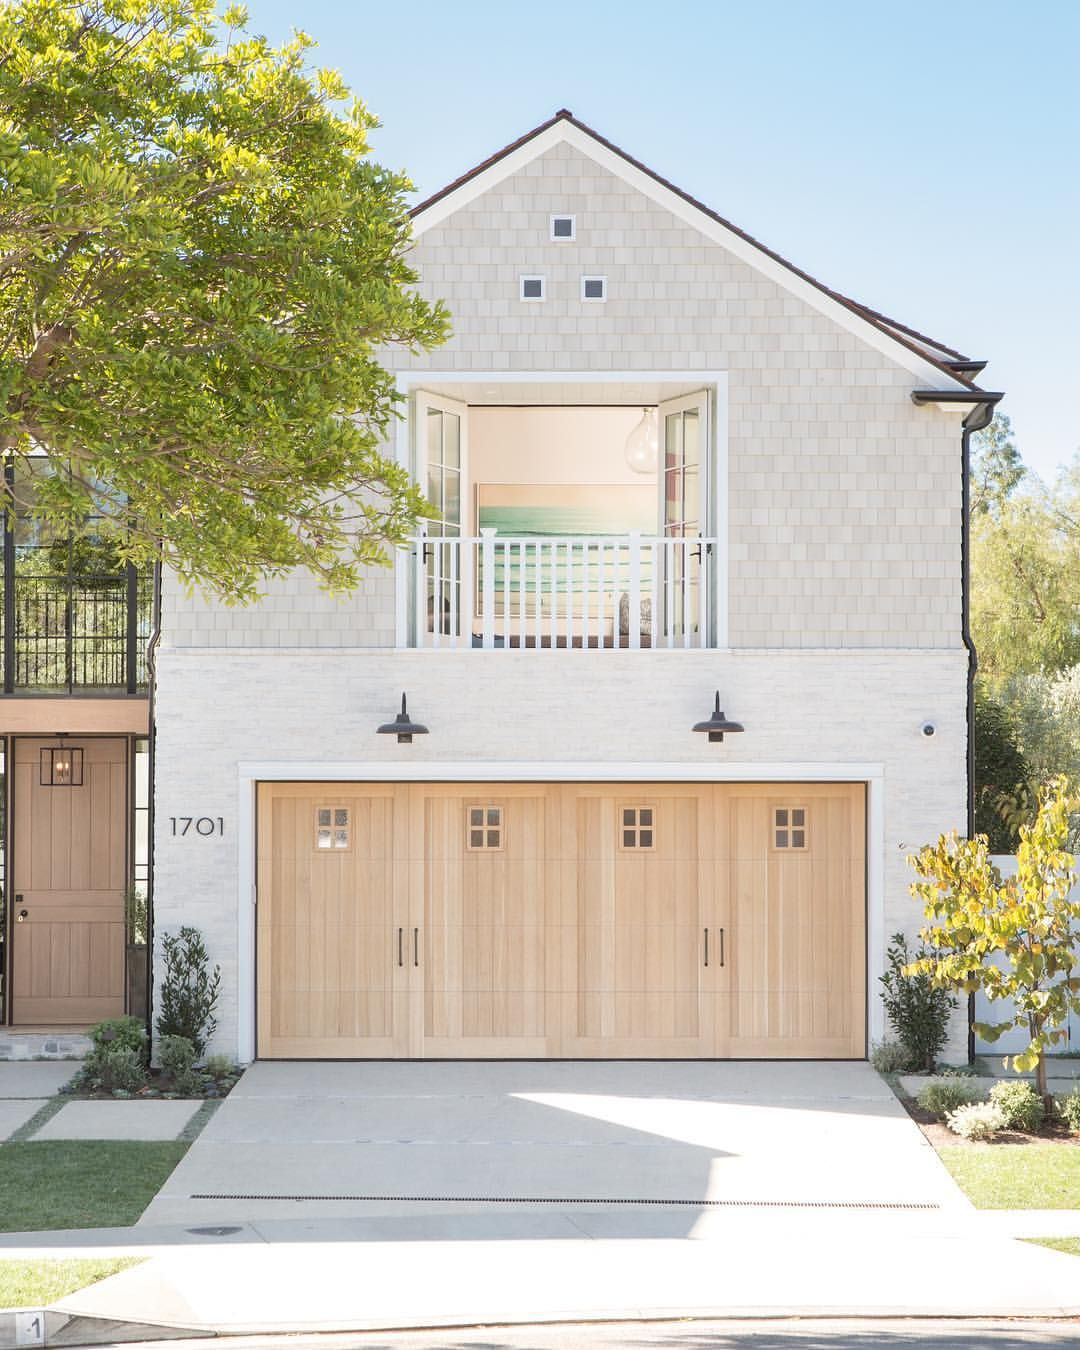 Garage Door Landscaping Ideas: •These Natural Cedar, Carriage Inspired Doors Are The